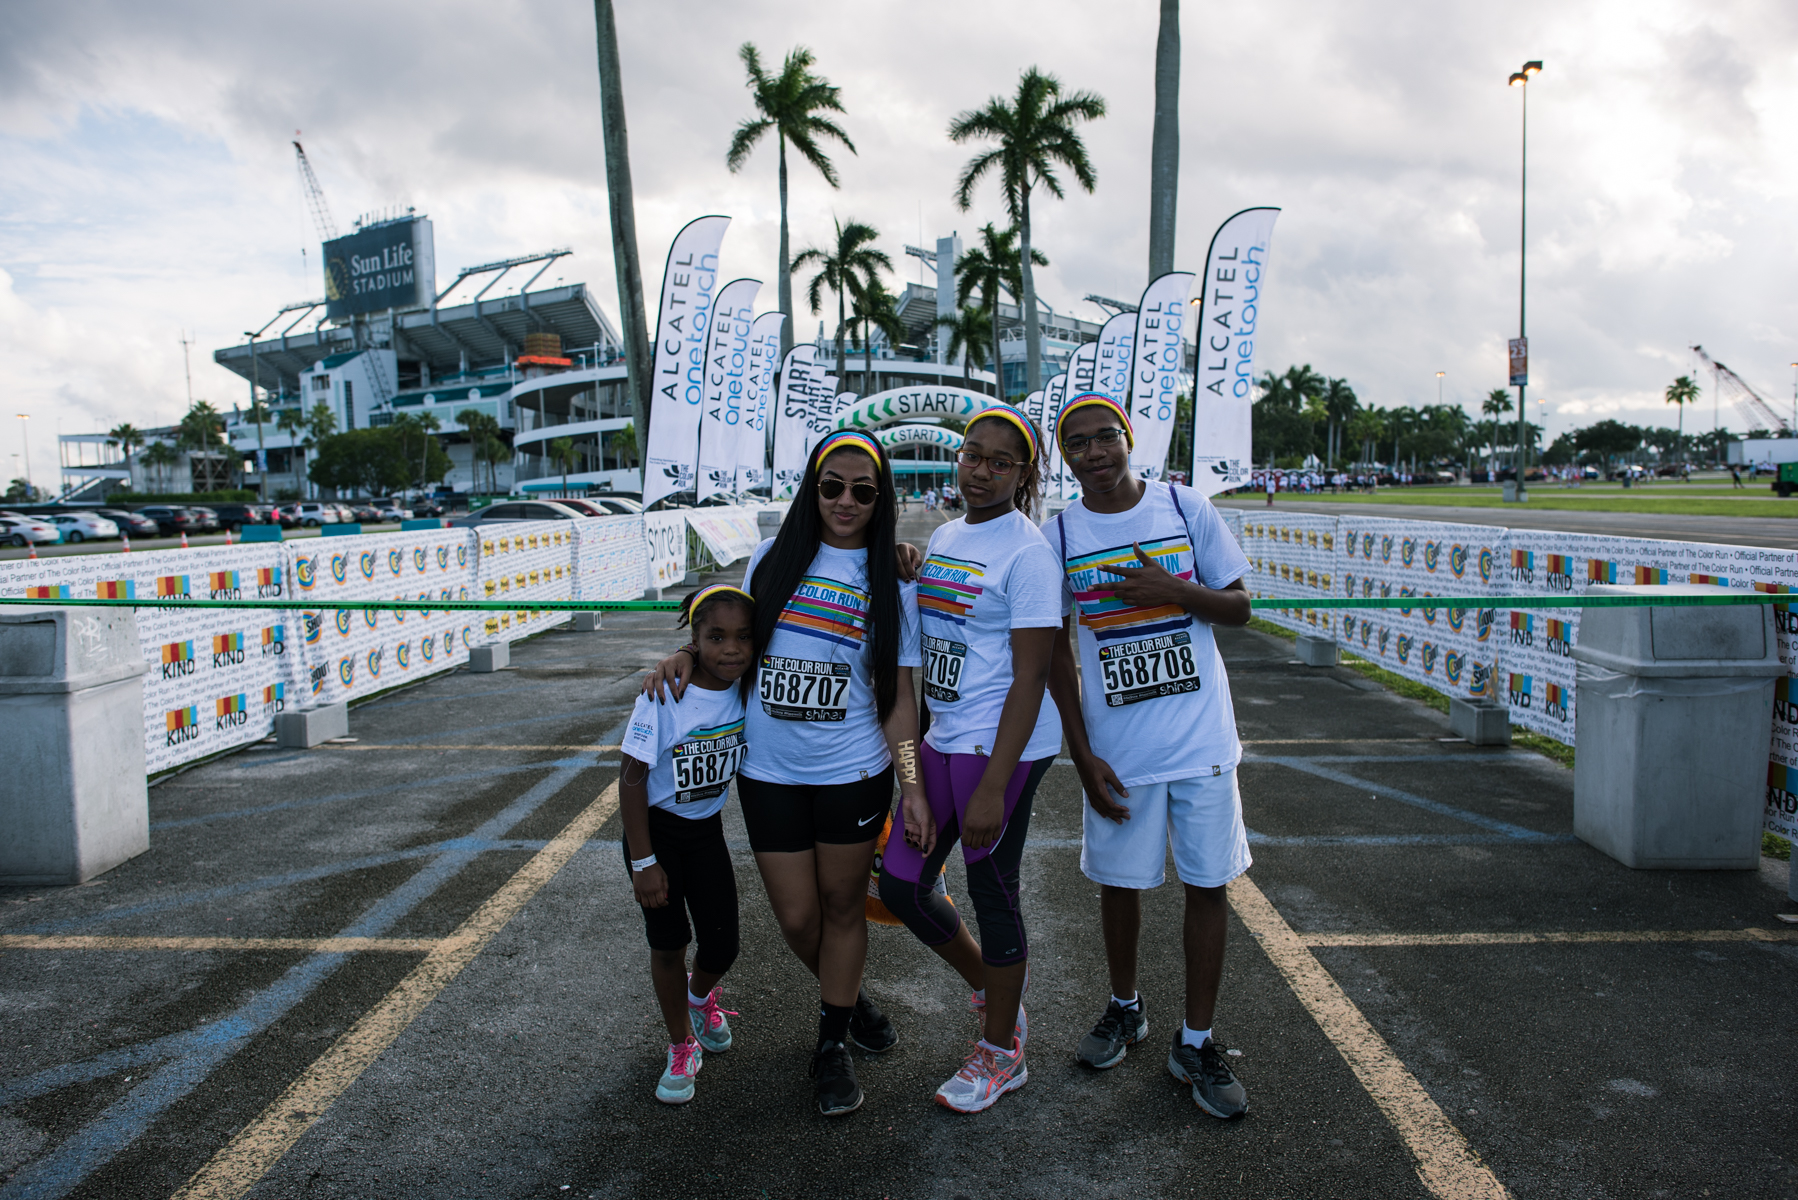 Color_Run-1.jpg